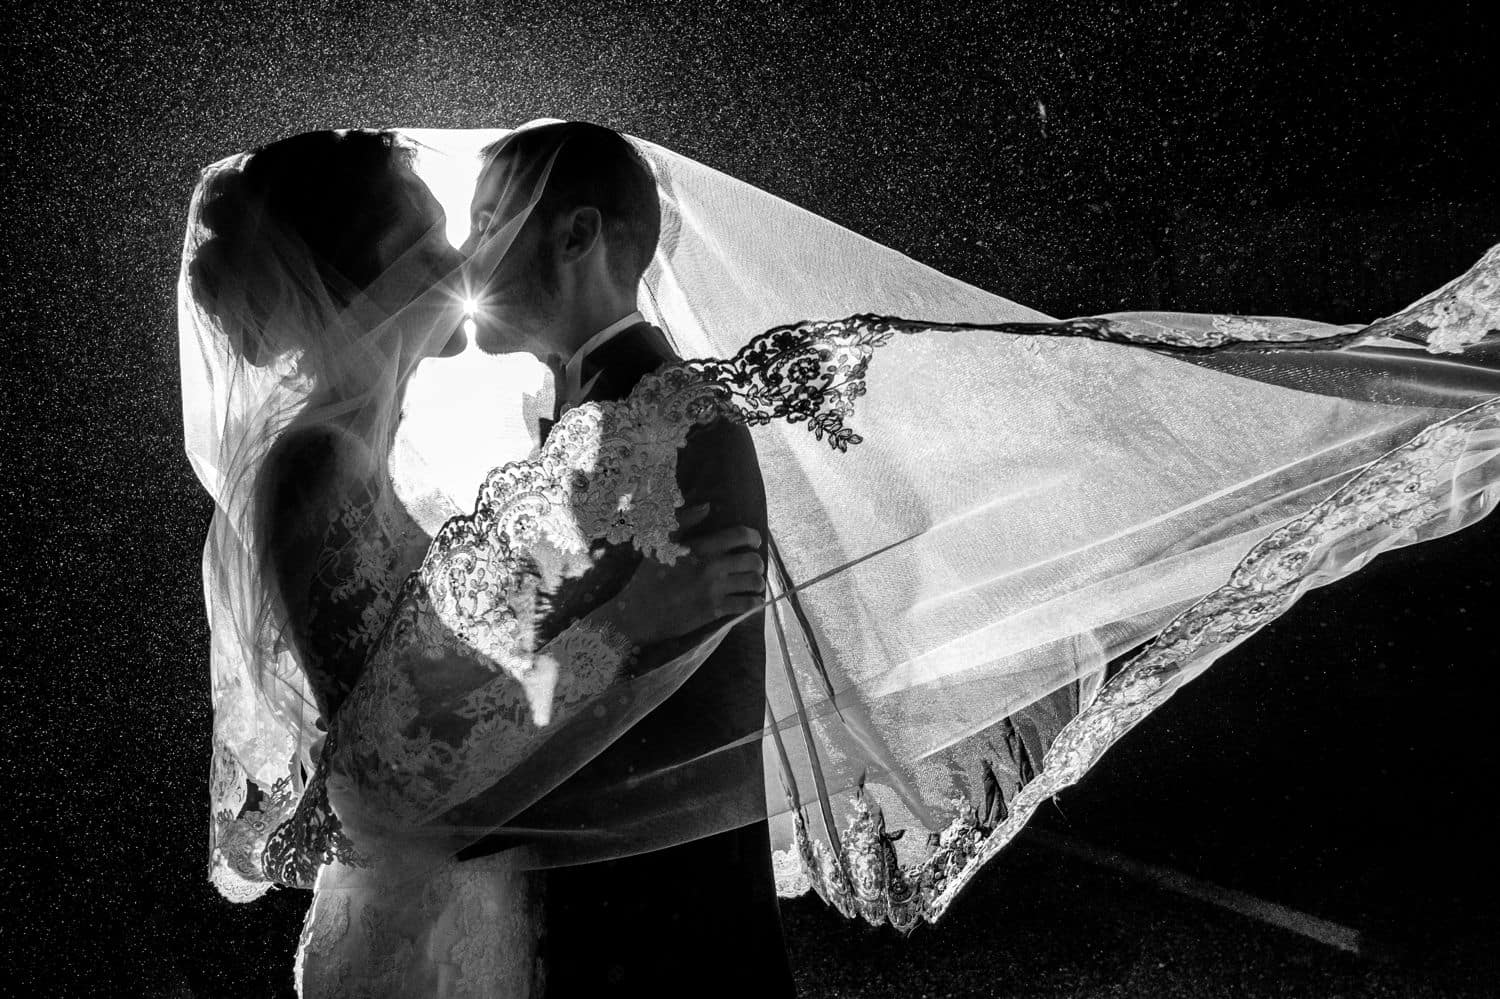 A bride's veil covers her head as well as the groom's as they pose nose-to-nose for a backlit nighttime wedding portrait